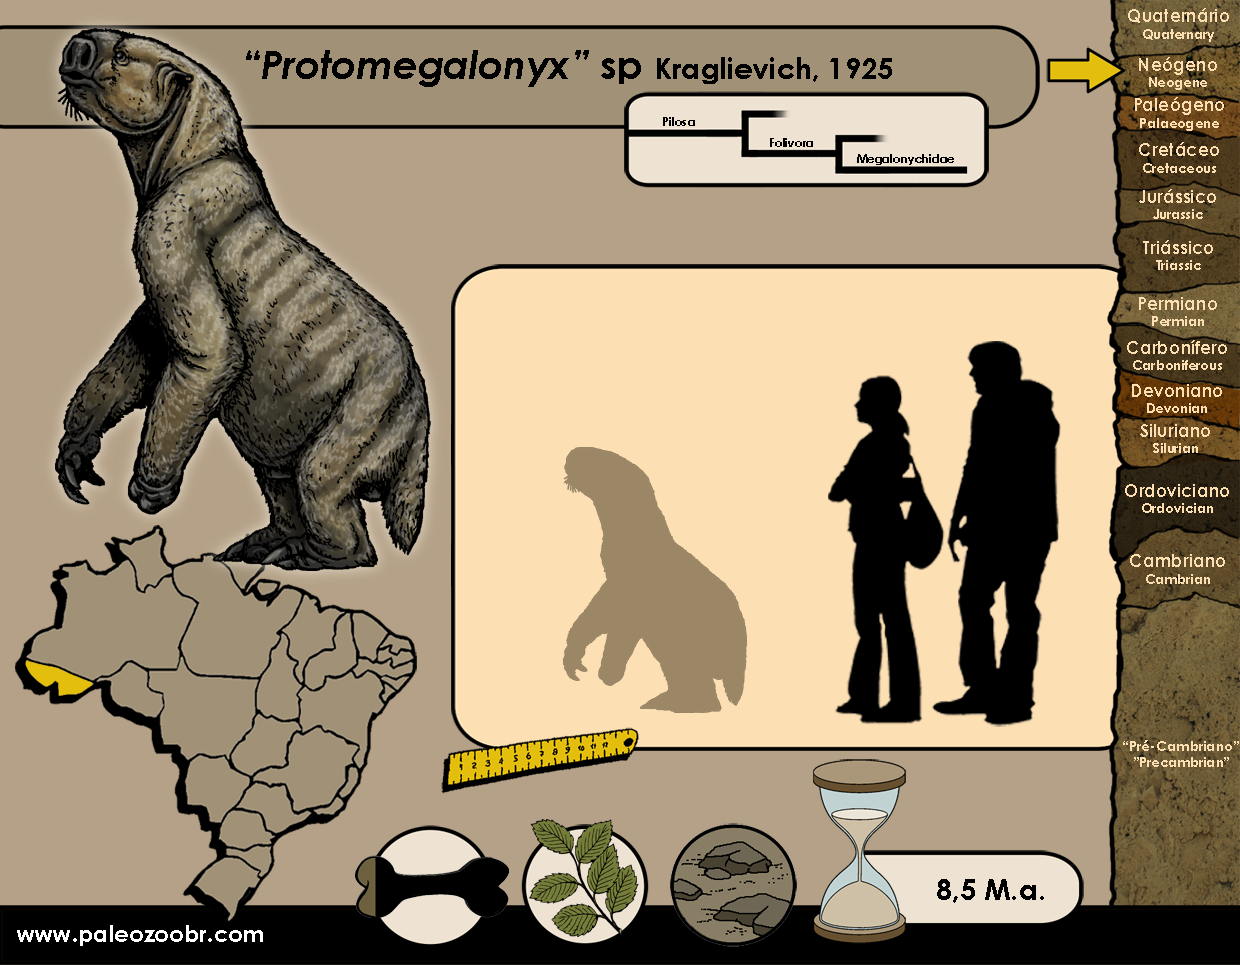 Protomegalonyx sp